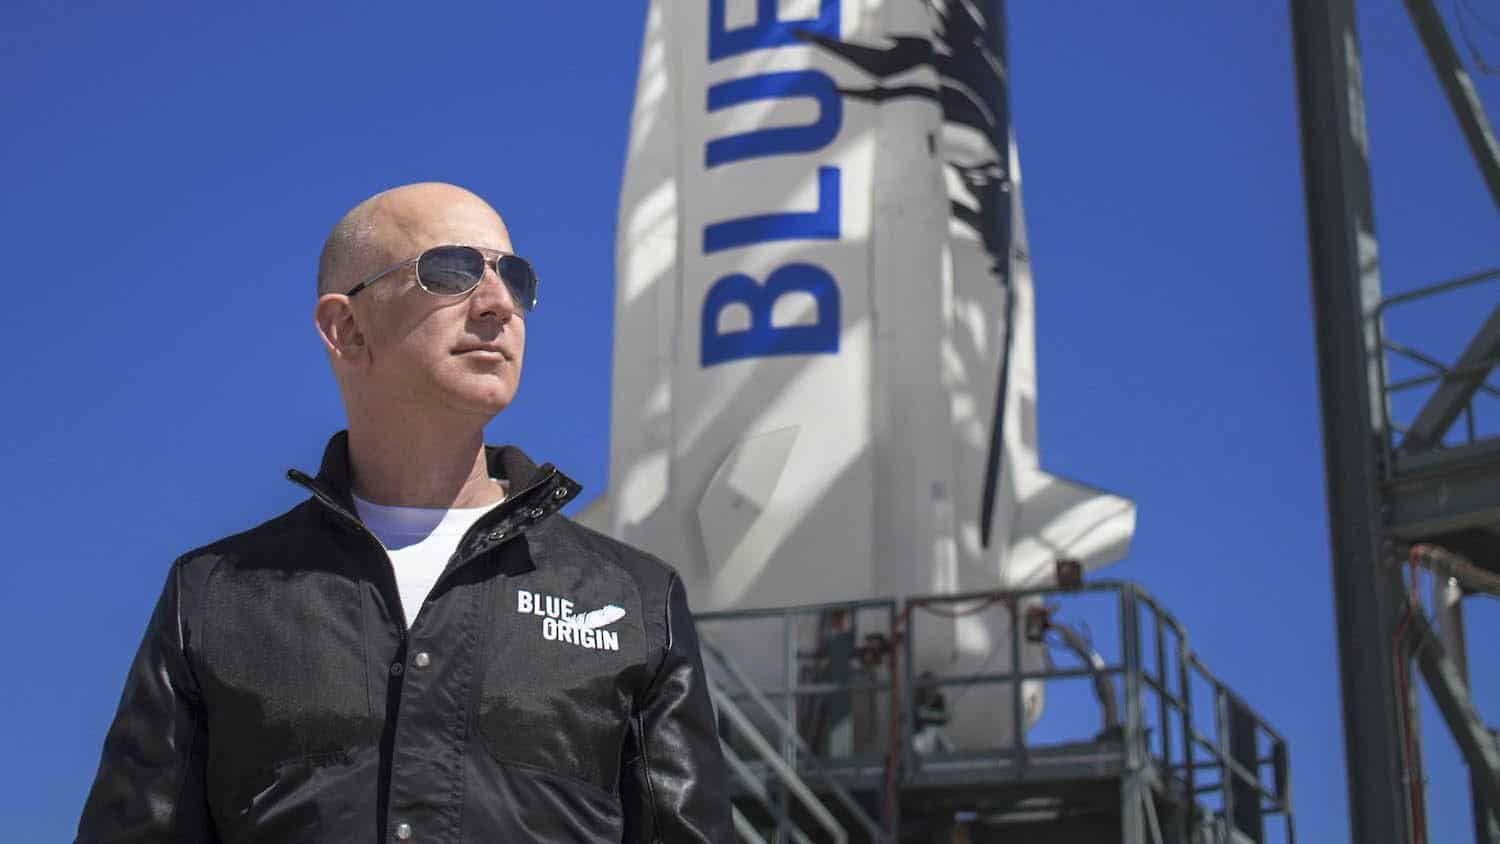 Blue Origin Company Profile - Jeff Bezos